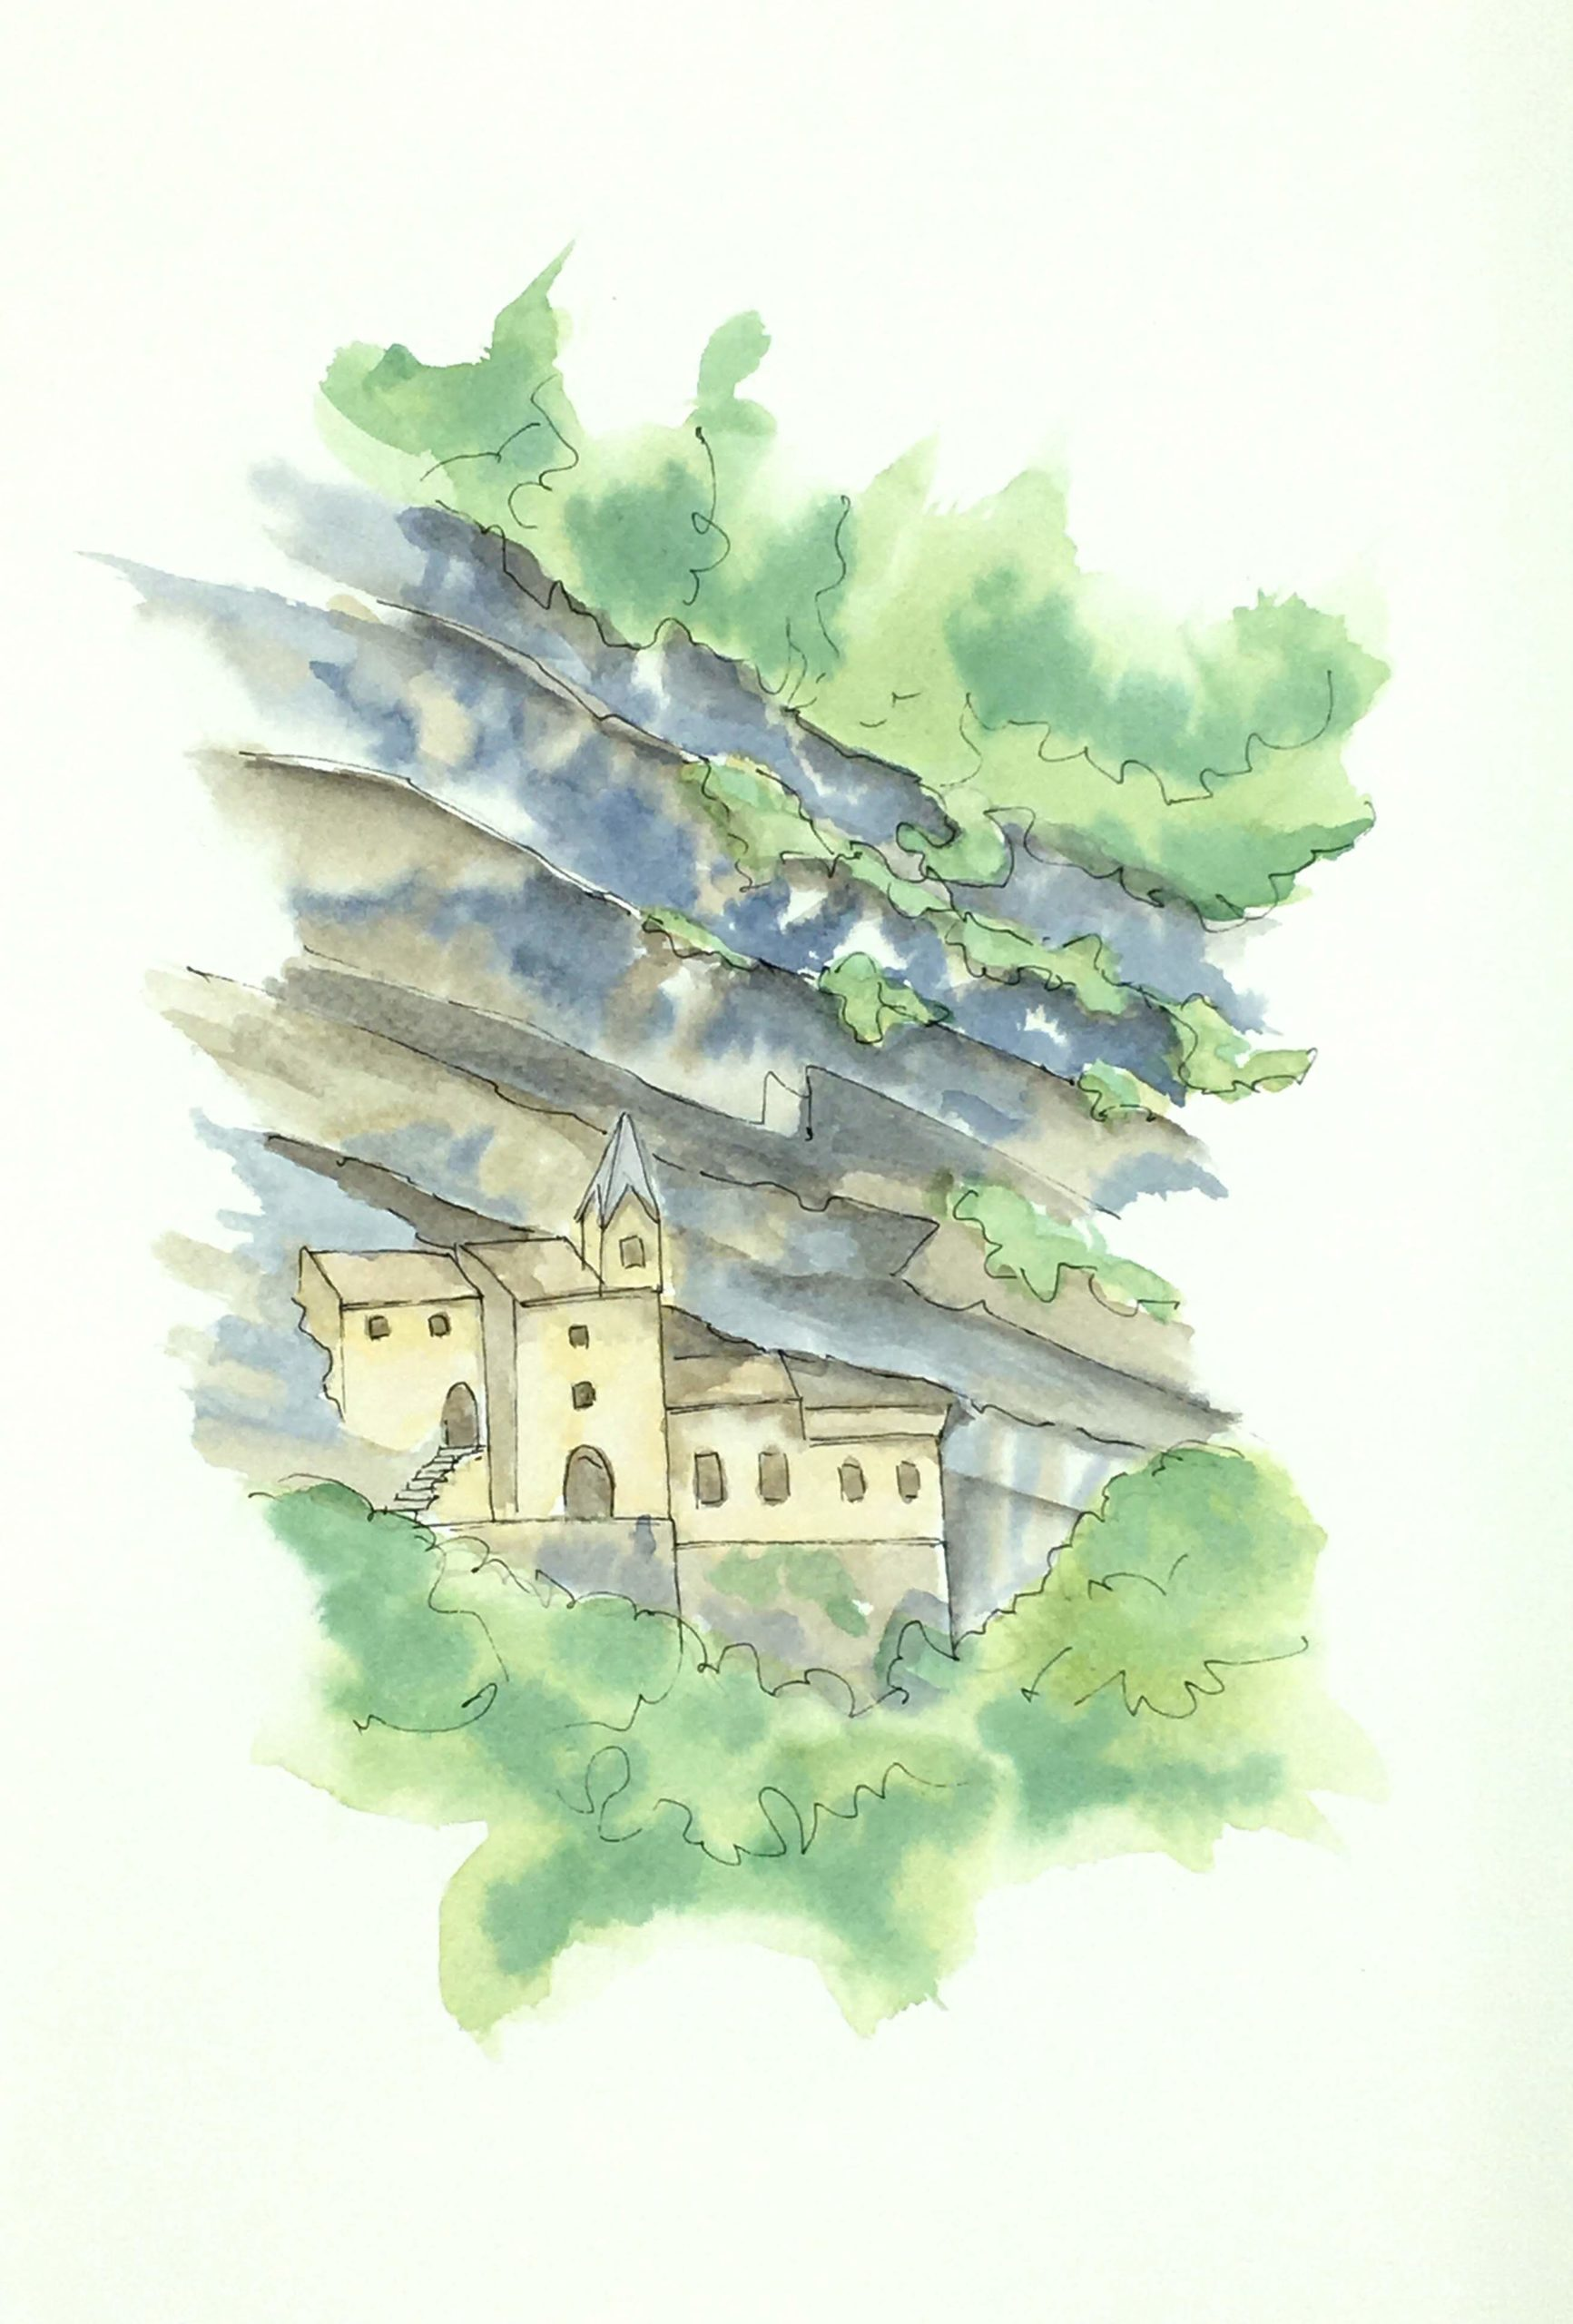 Painting of The Hermitage of San Colombano